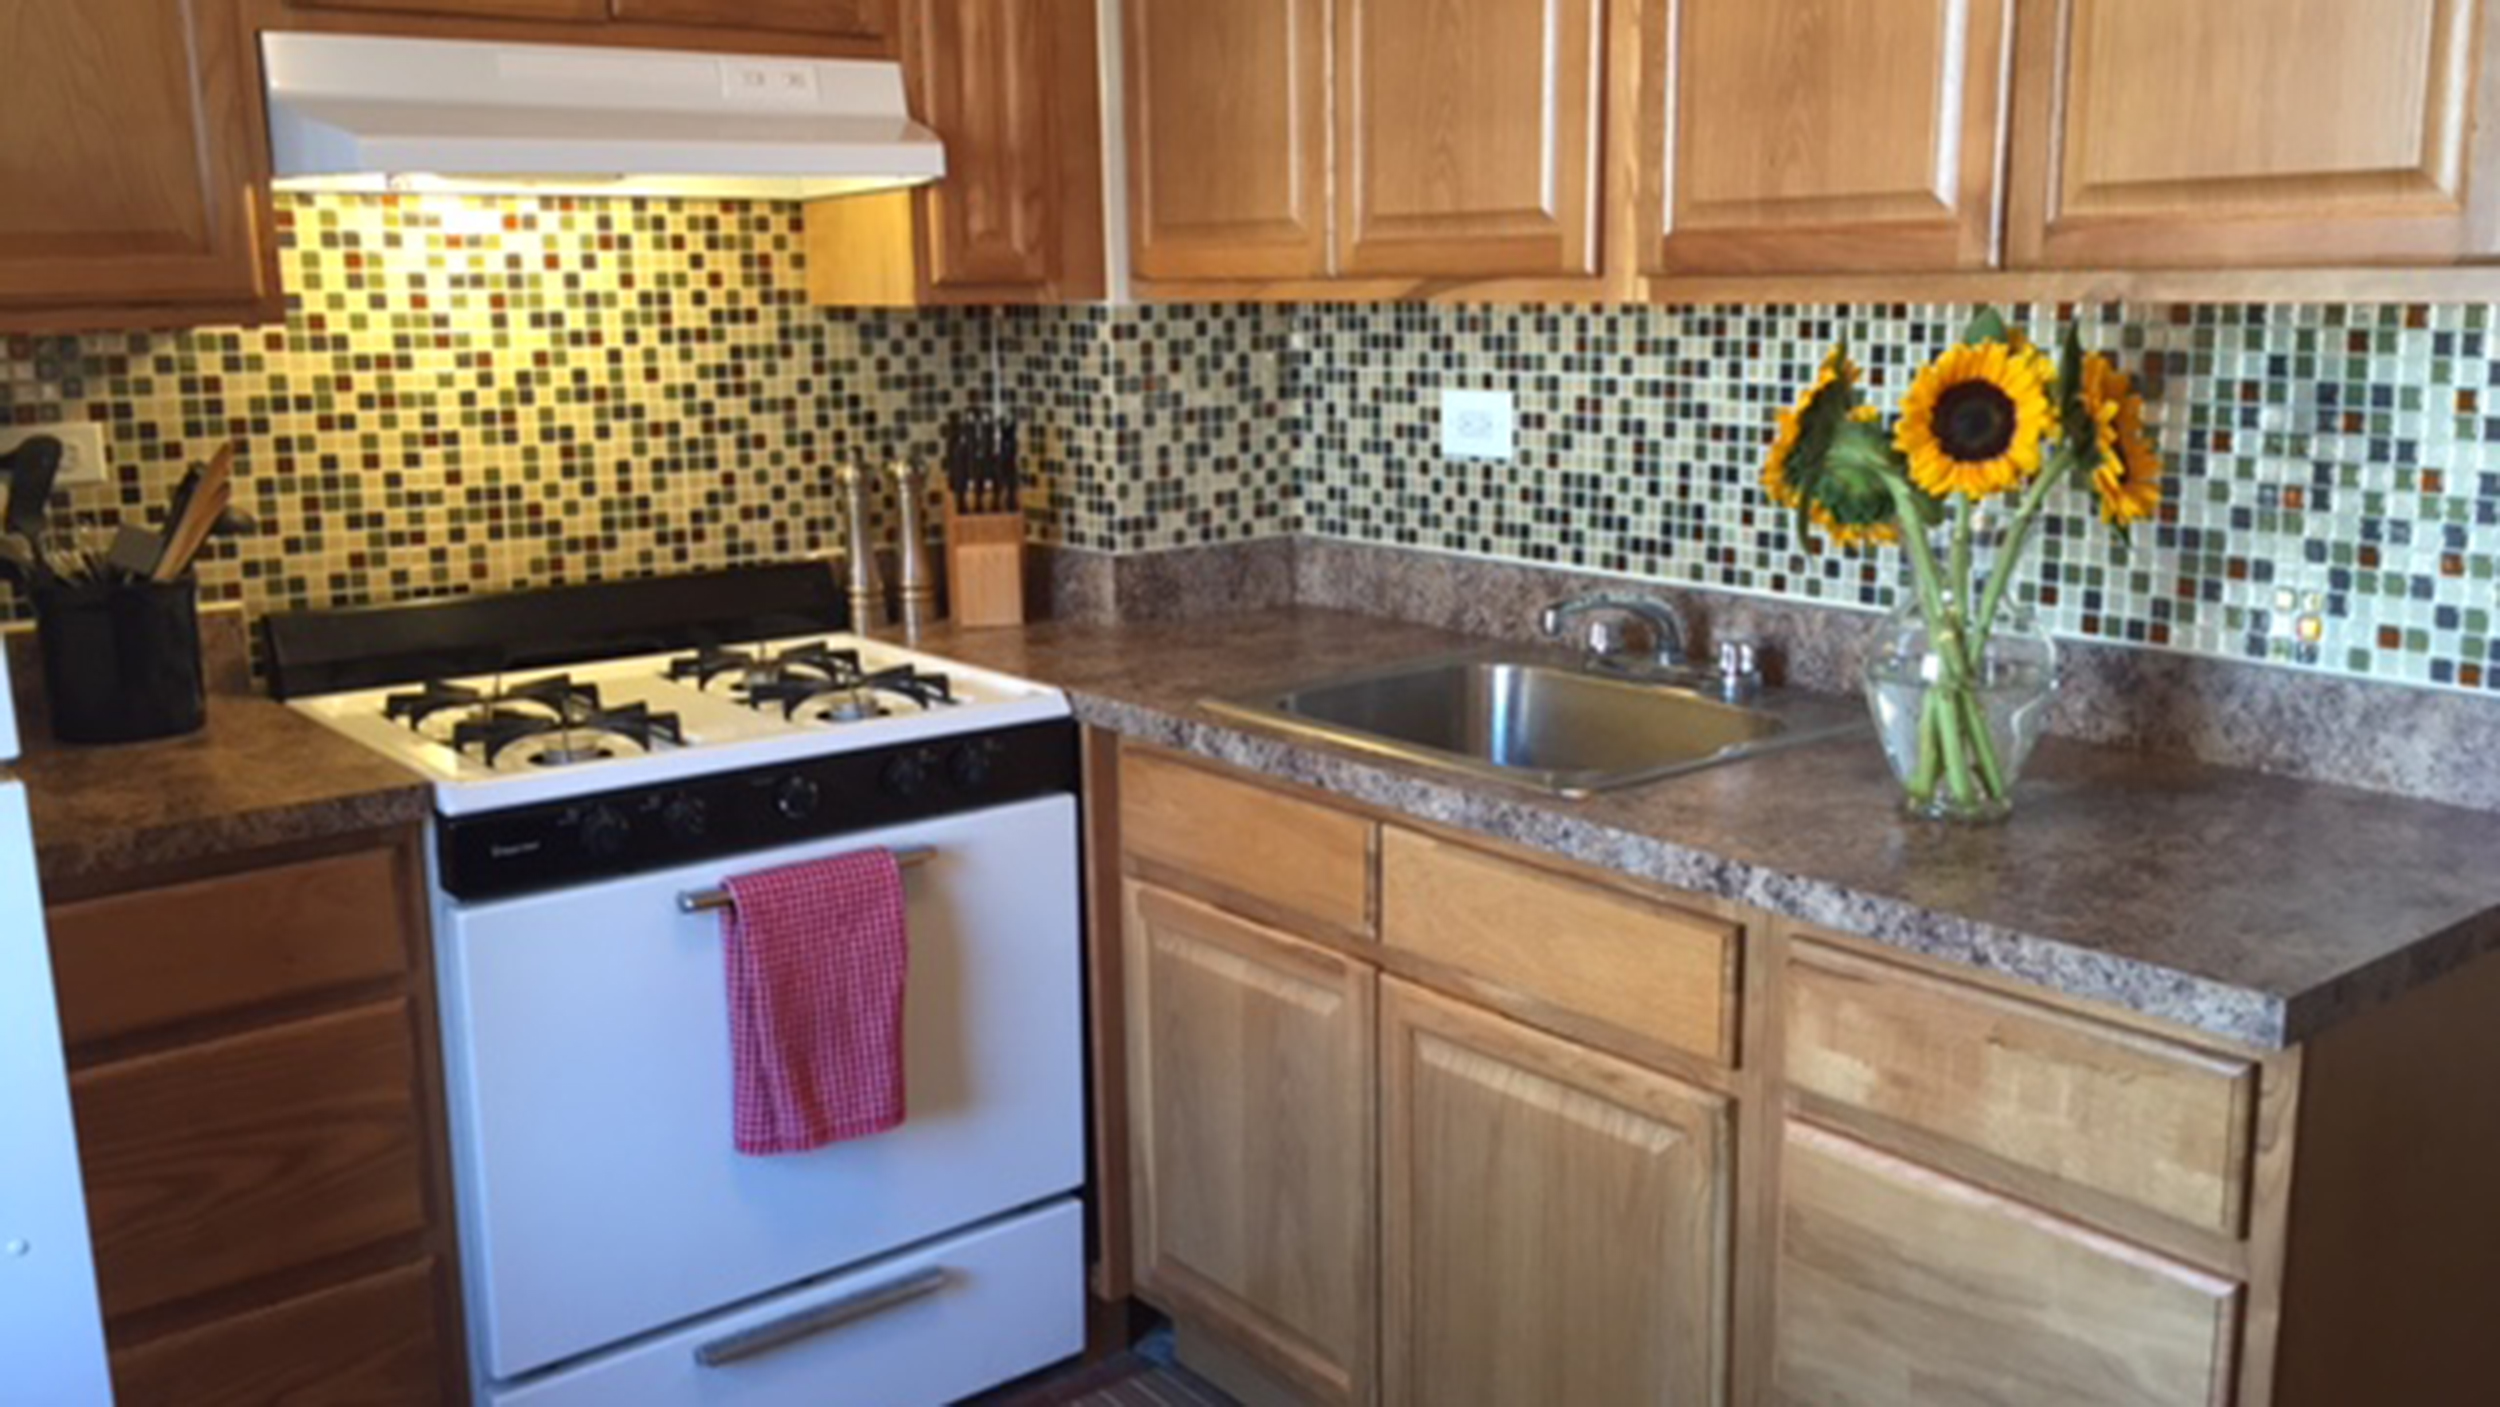 Today tests temporary backsplash tiles from smart tiles dailygadgetfo Image collections